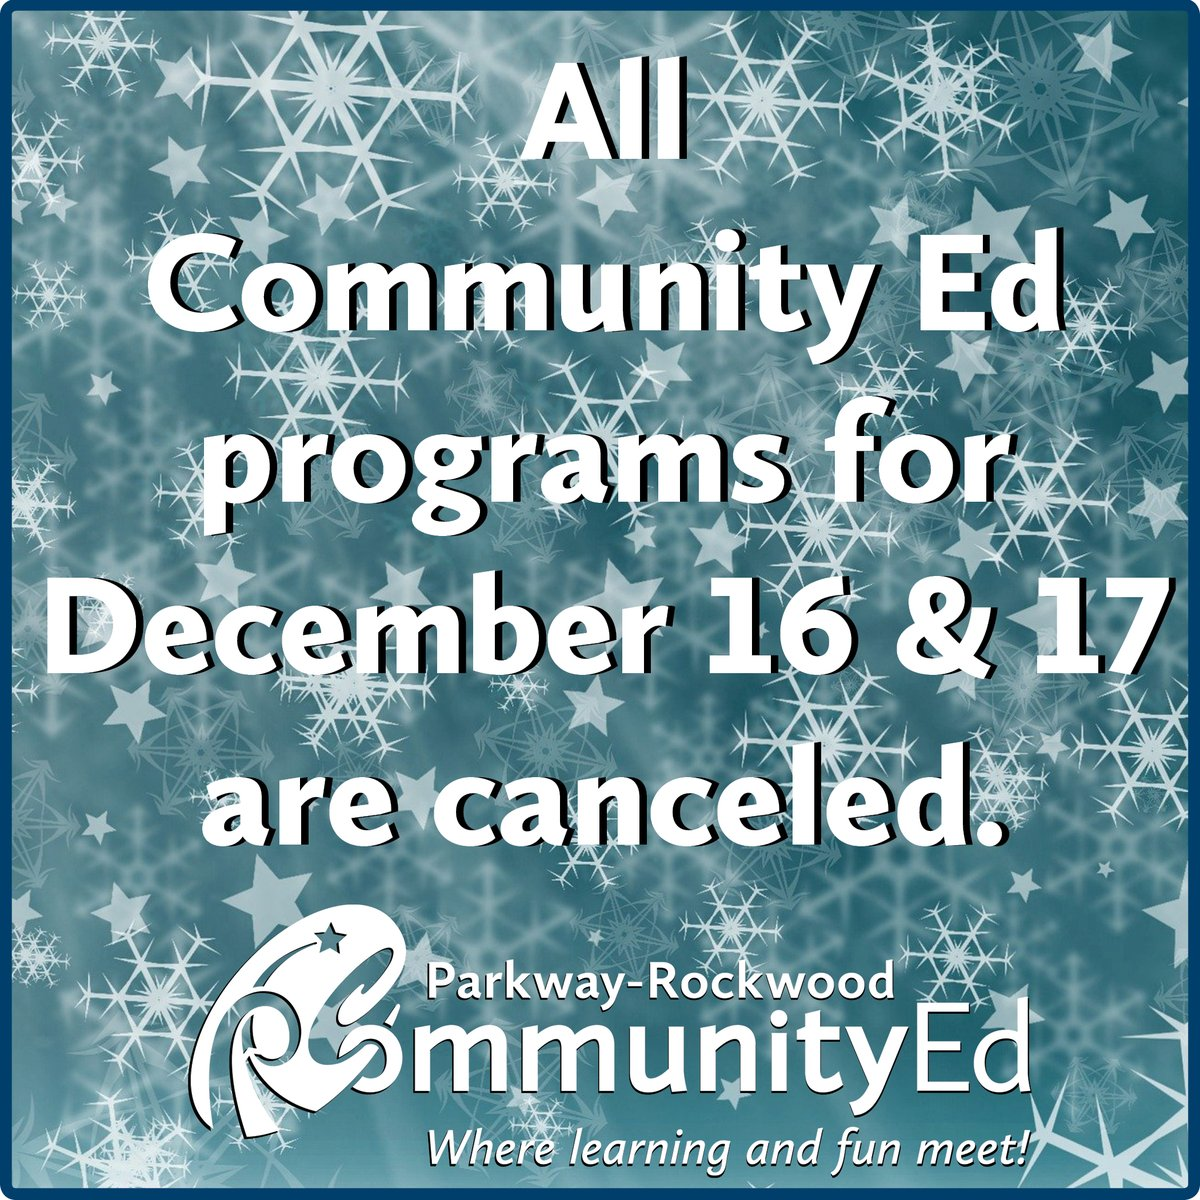 Due to continued severe weather, all Community Ed programs for Dec. 16 and 17 are canceled.